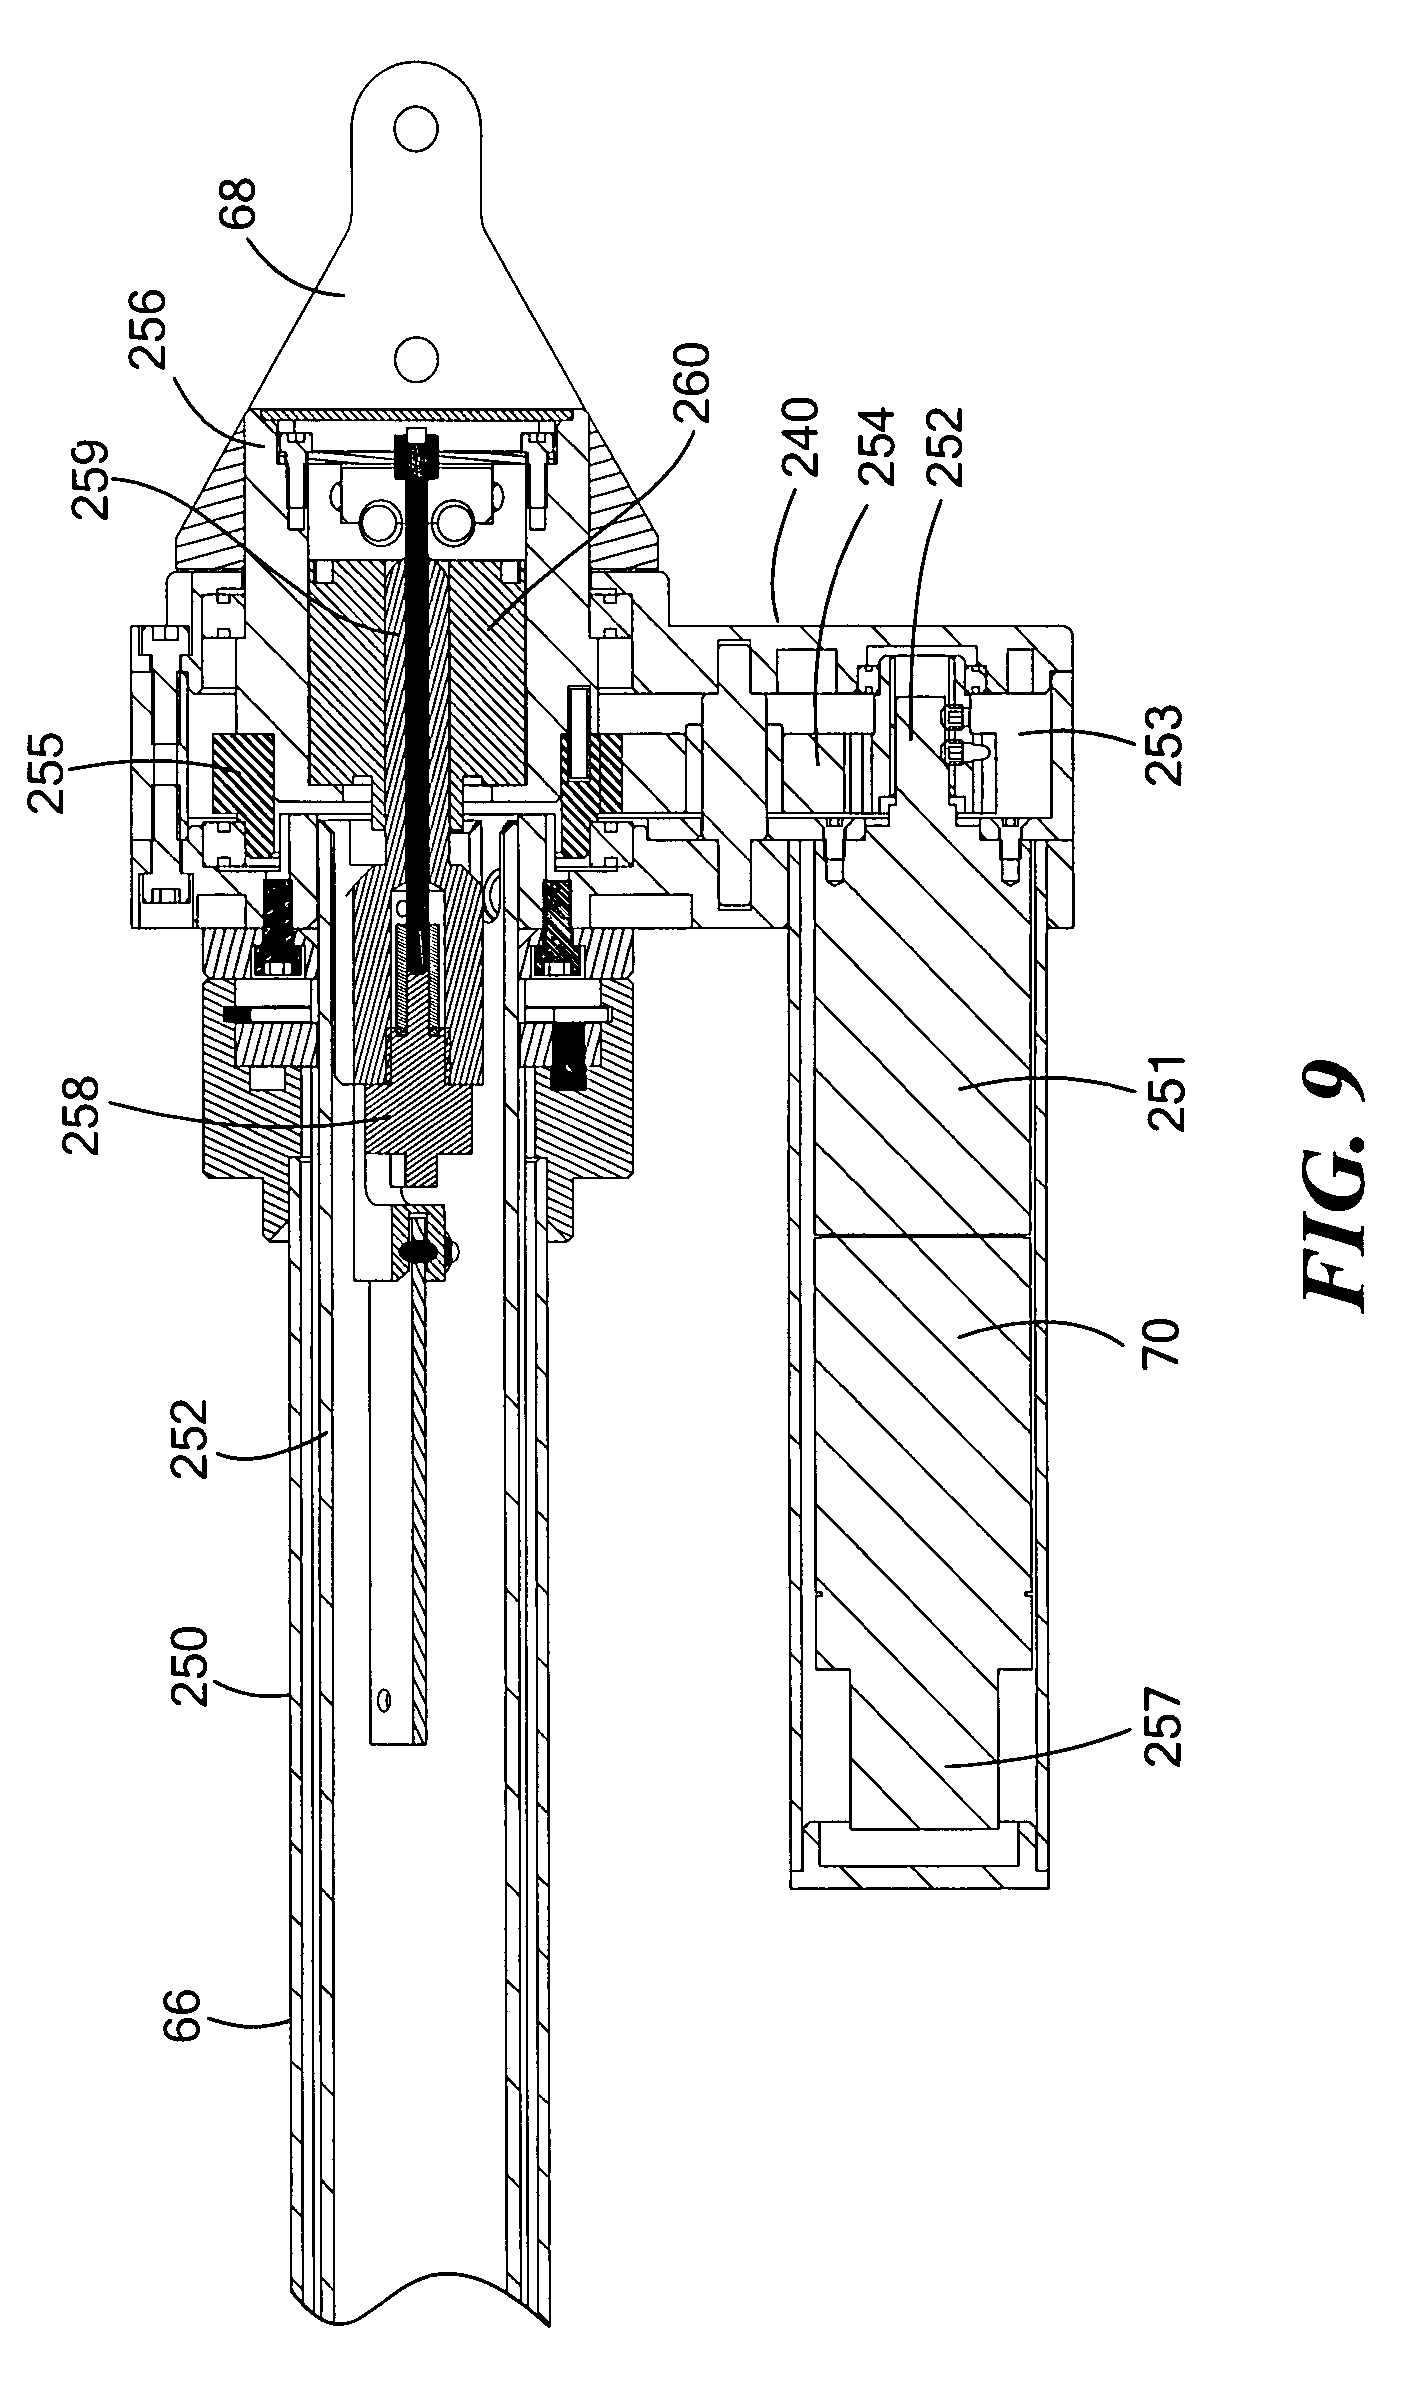 patent us8176808 - robot arm assembly